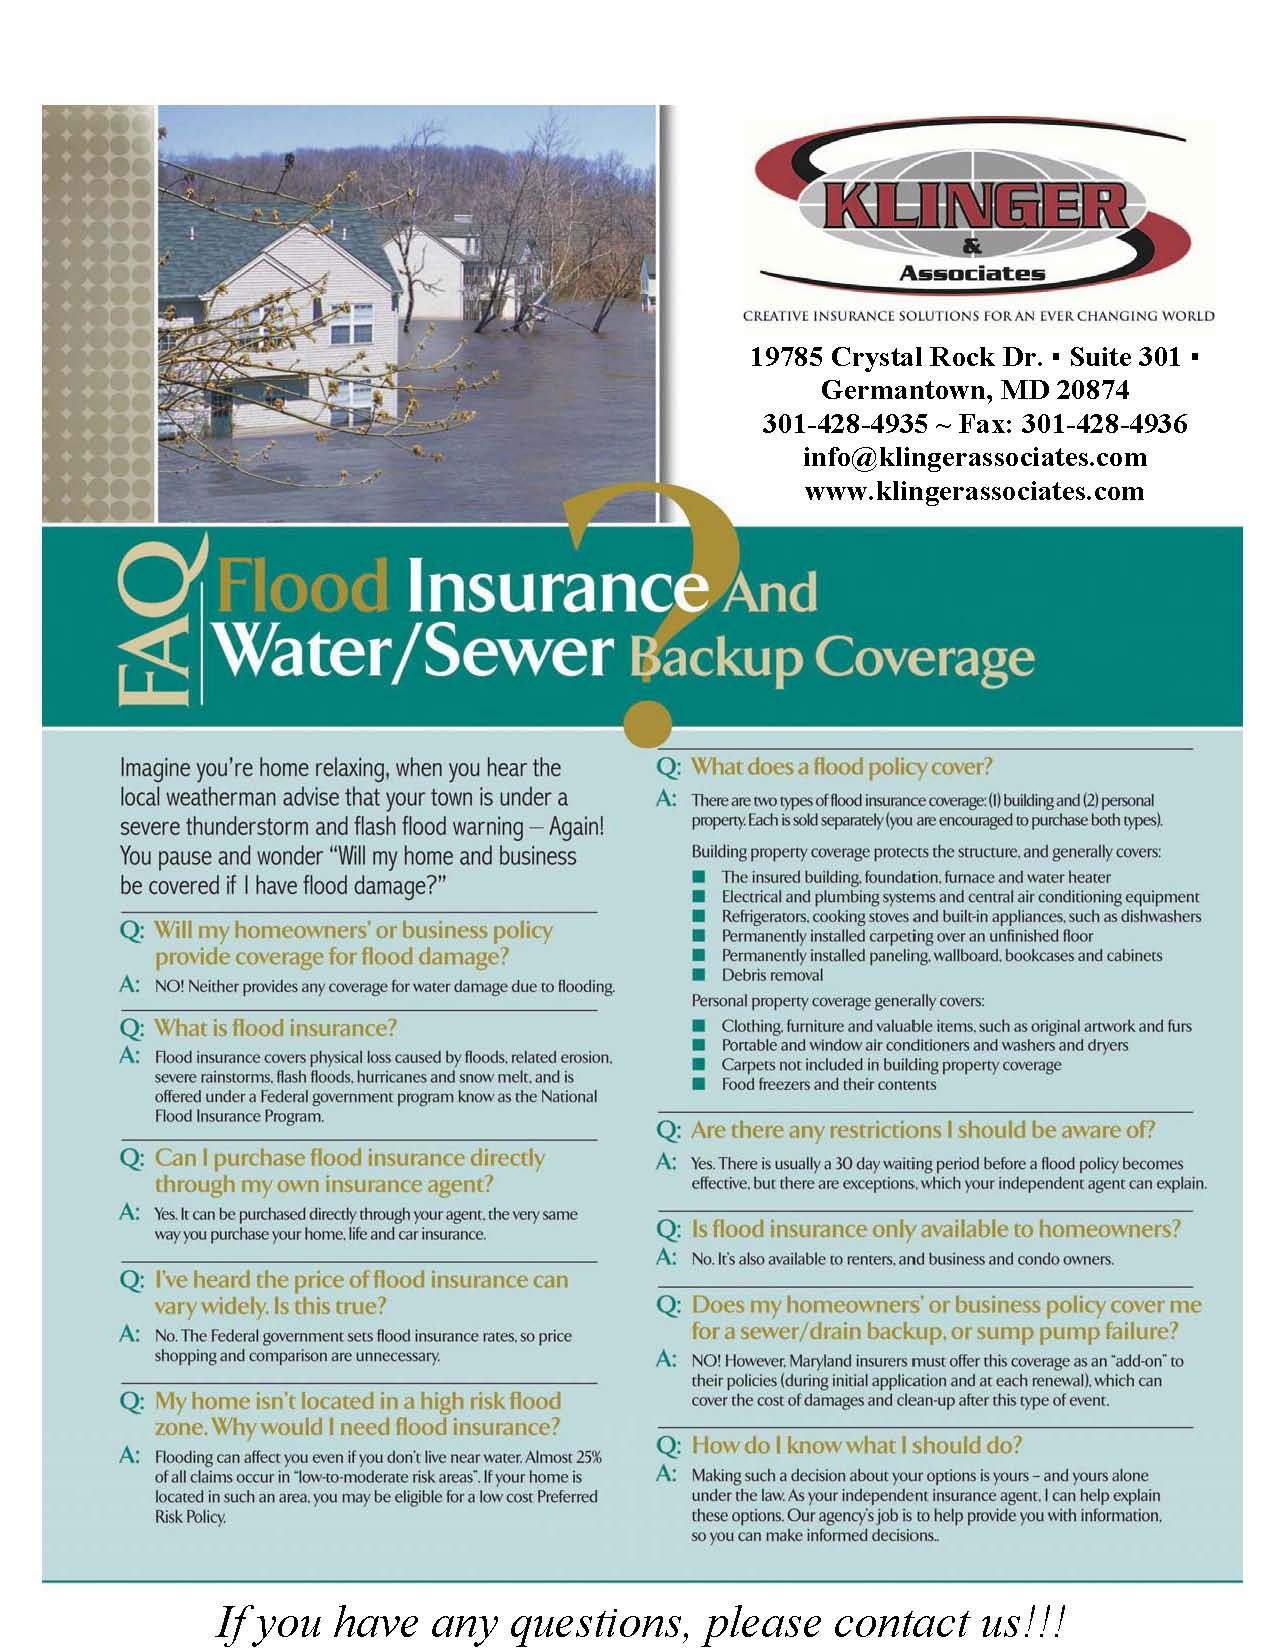 Faq Flood Insurance And Water Sewer Backup Coverage Flood